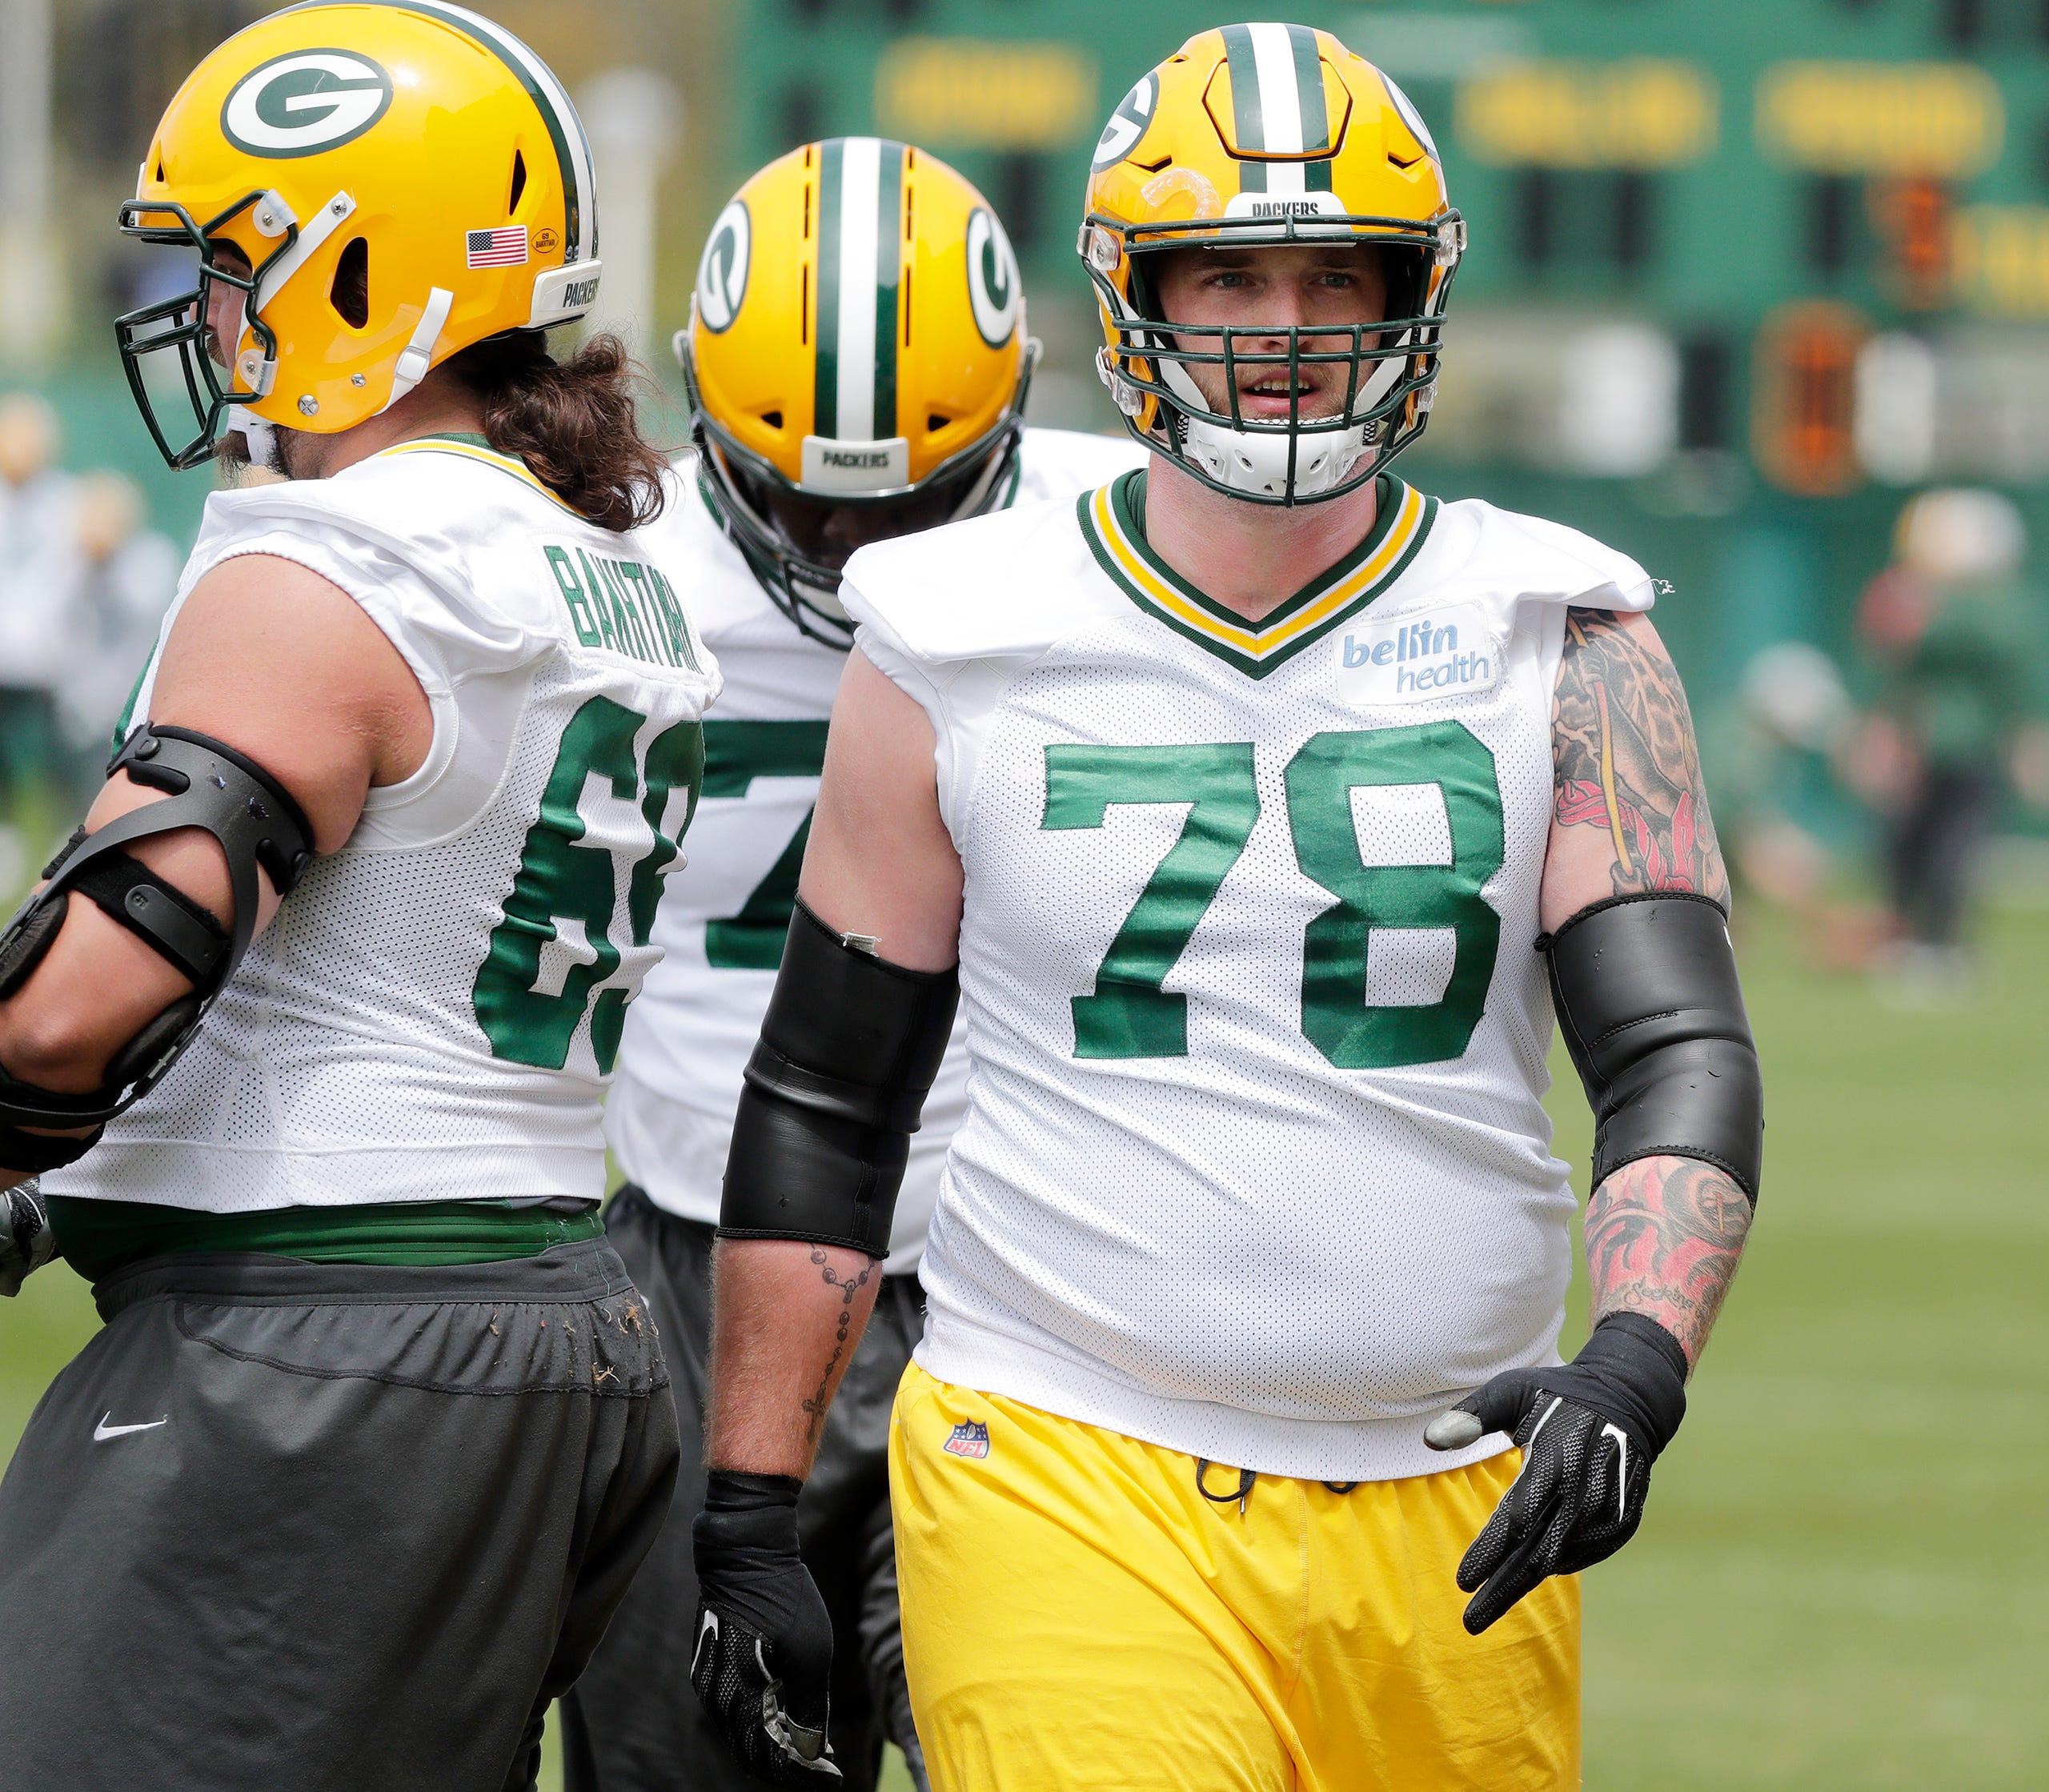 Green Bay Packers offensive tackle Jason Spriggs [78) during practice at Clarke Hinkle Field on Tuesday, May 21, 2019 in Ashwaubenon, Wis. Adam Wesley/USA TODAY NETWORK-Wis